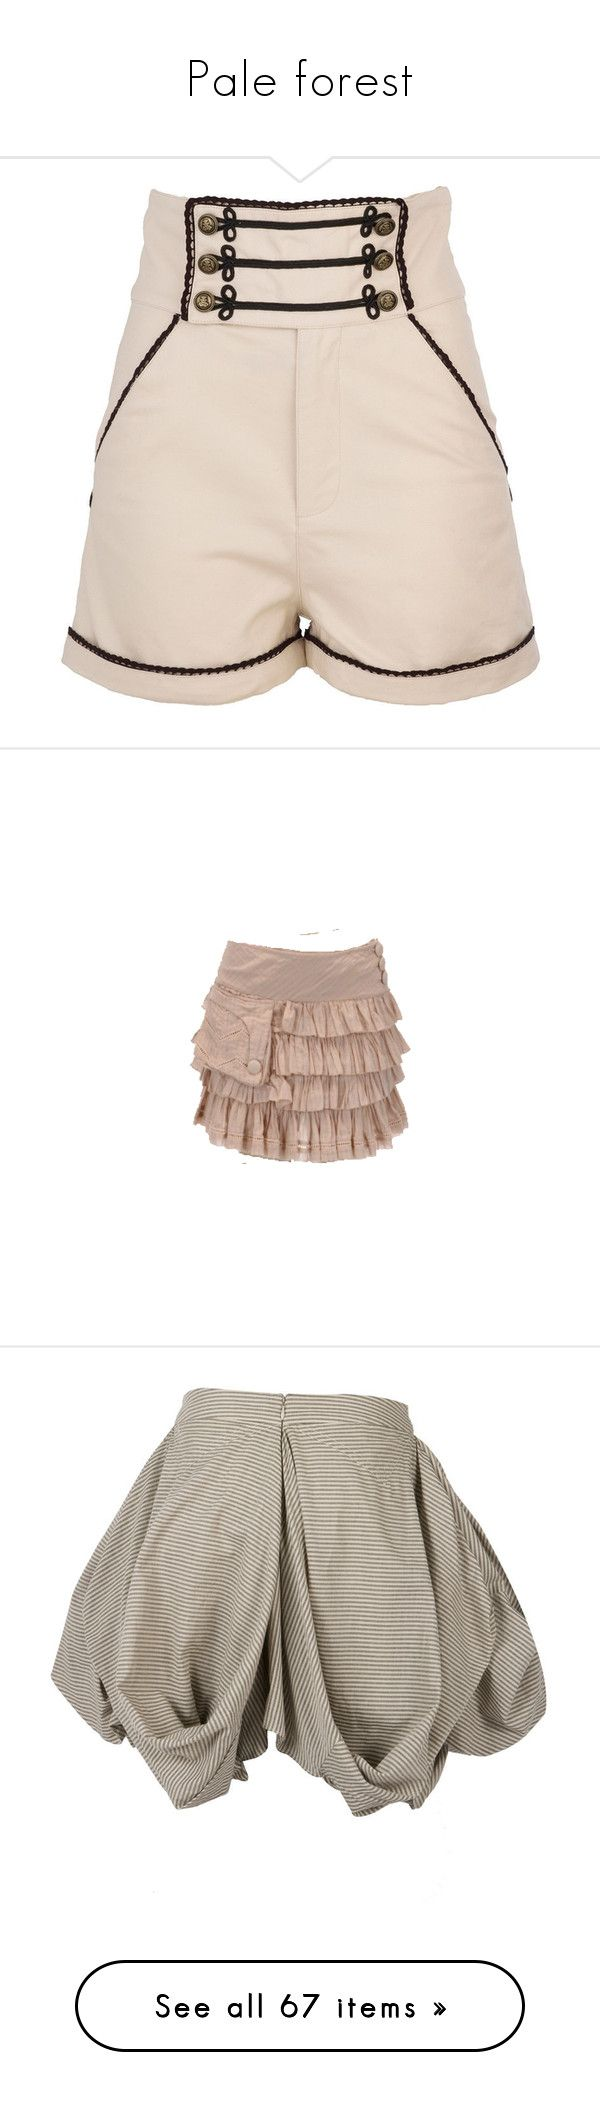 """Pale forest"" by hachi13 on Polyvore featuring shorts, military style shorts, military shorts, high waisted cotton shorts, high-waisted shorts, cream shorts, skirts, bottoms, steampunk y pocket skirt"